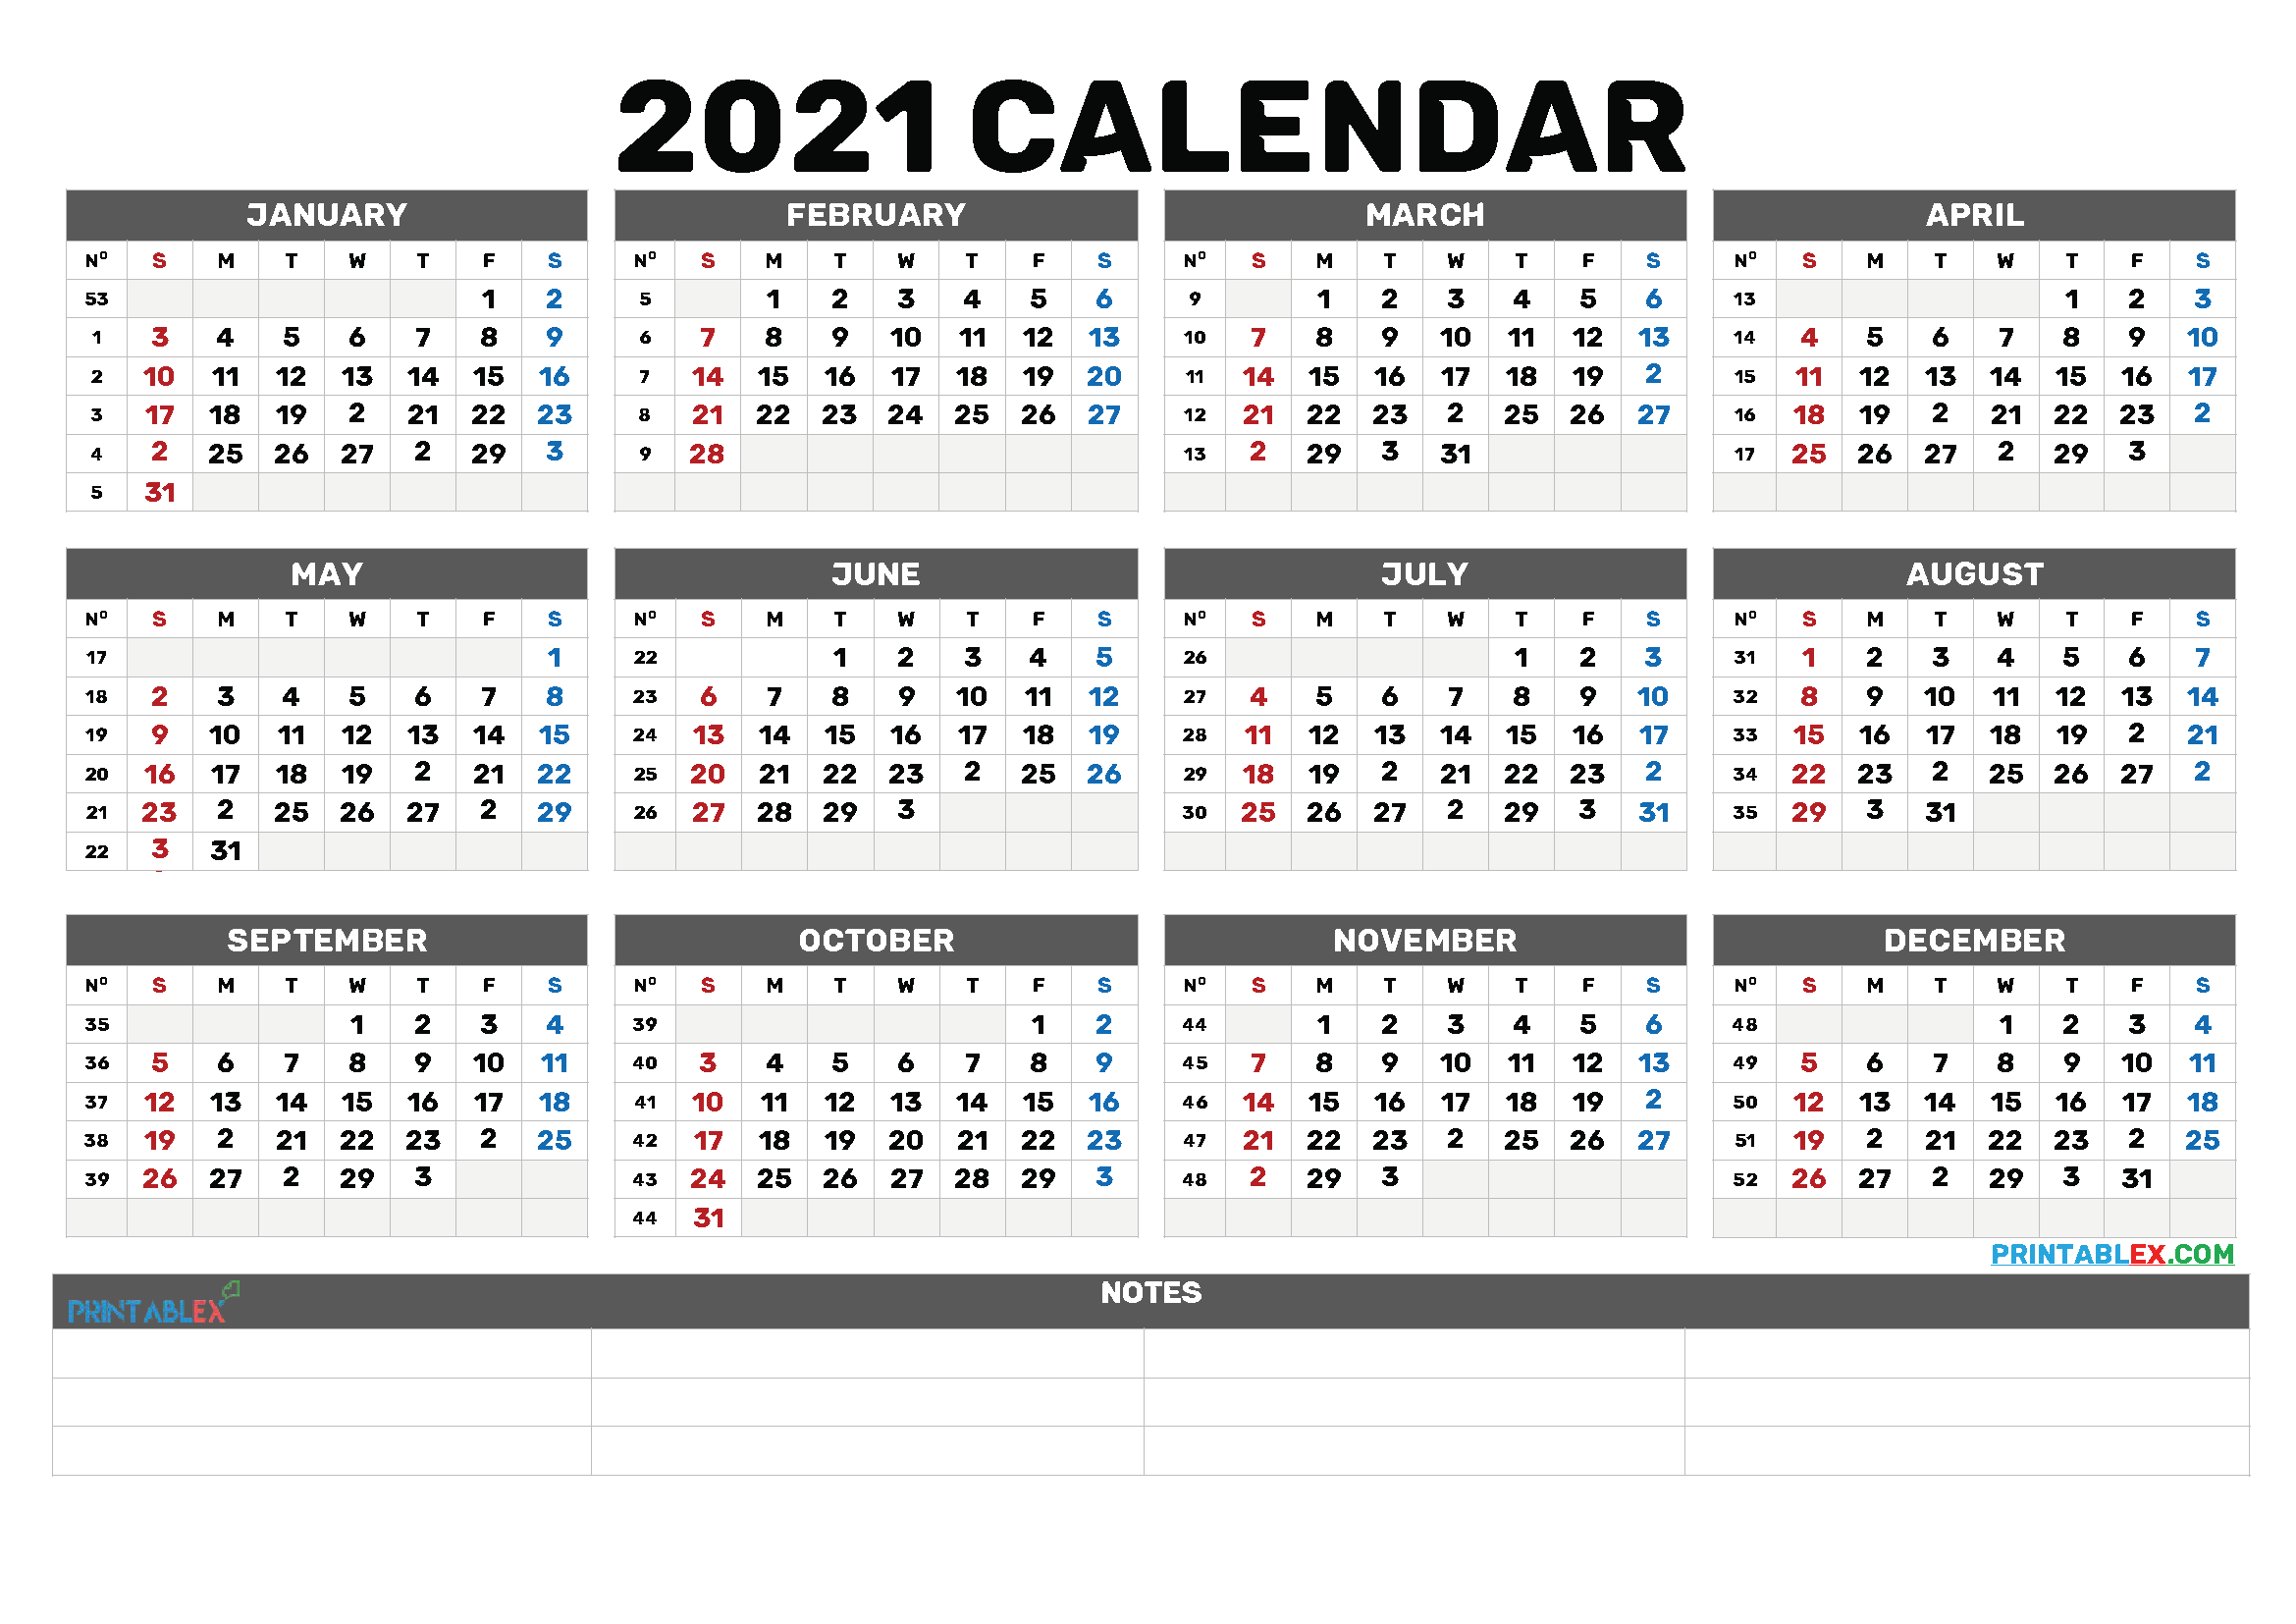 Free Printable 2021 Calendar by Year (Font: magneto)